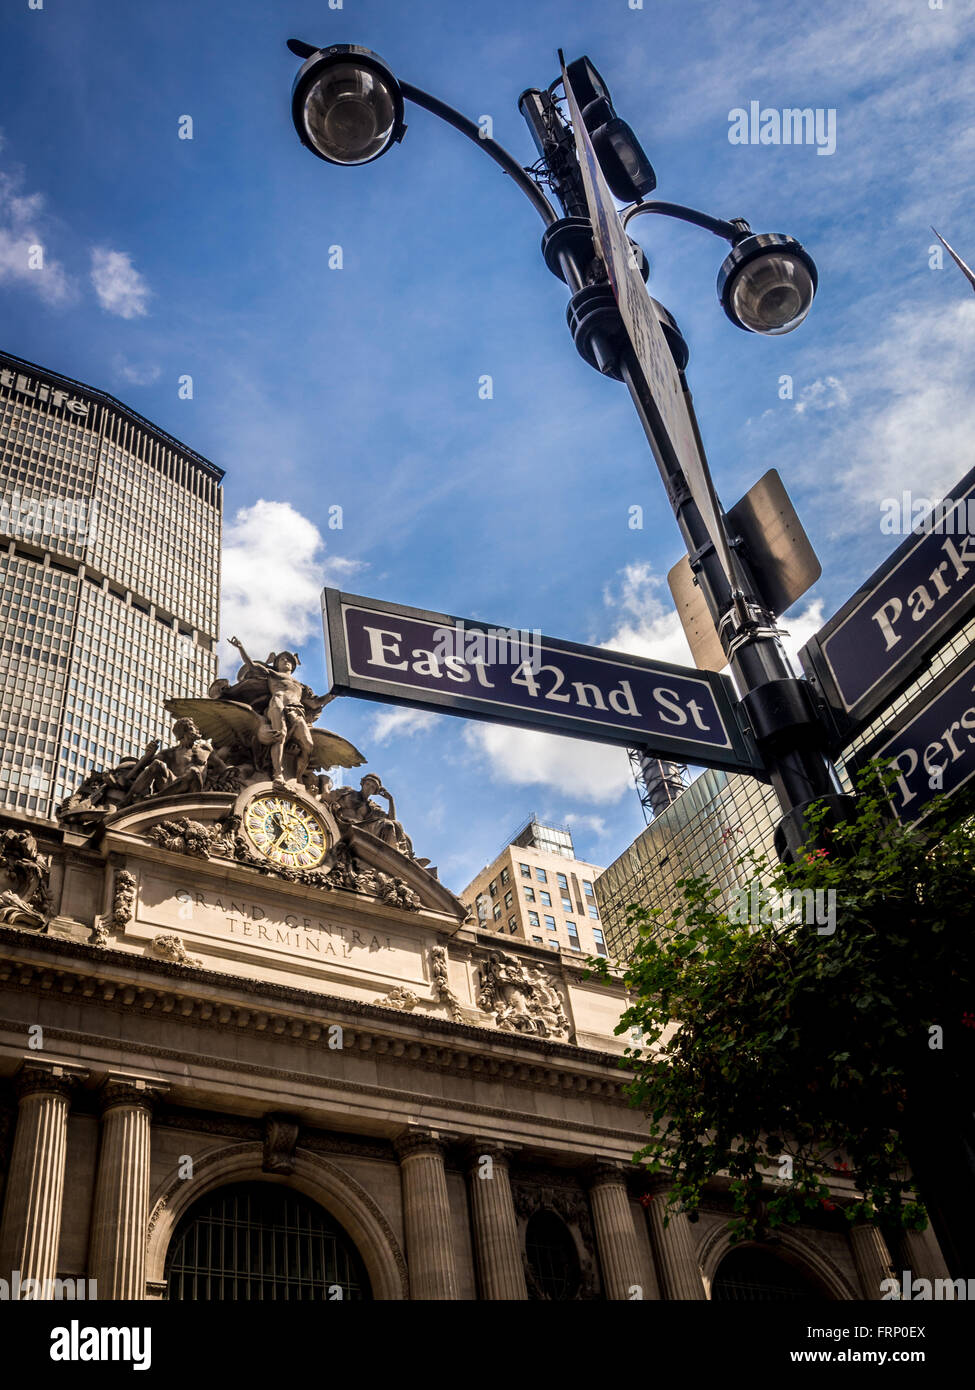 East 42nd St sign on lampost outside Grand Central Terminal train station, New York City, USA. - Stock Image